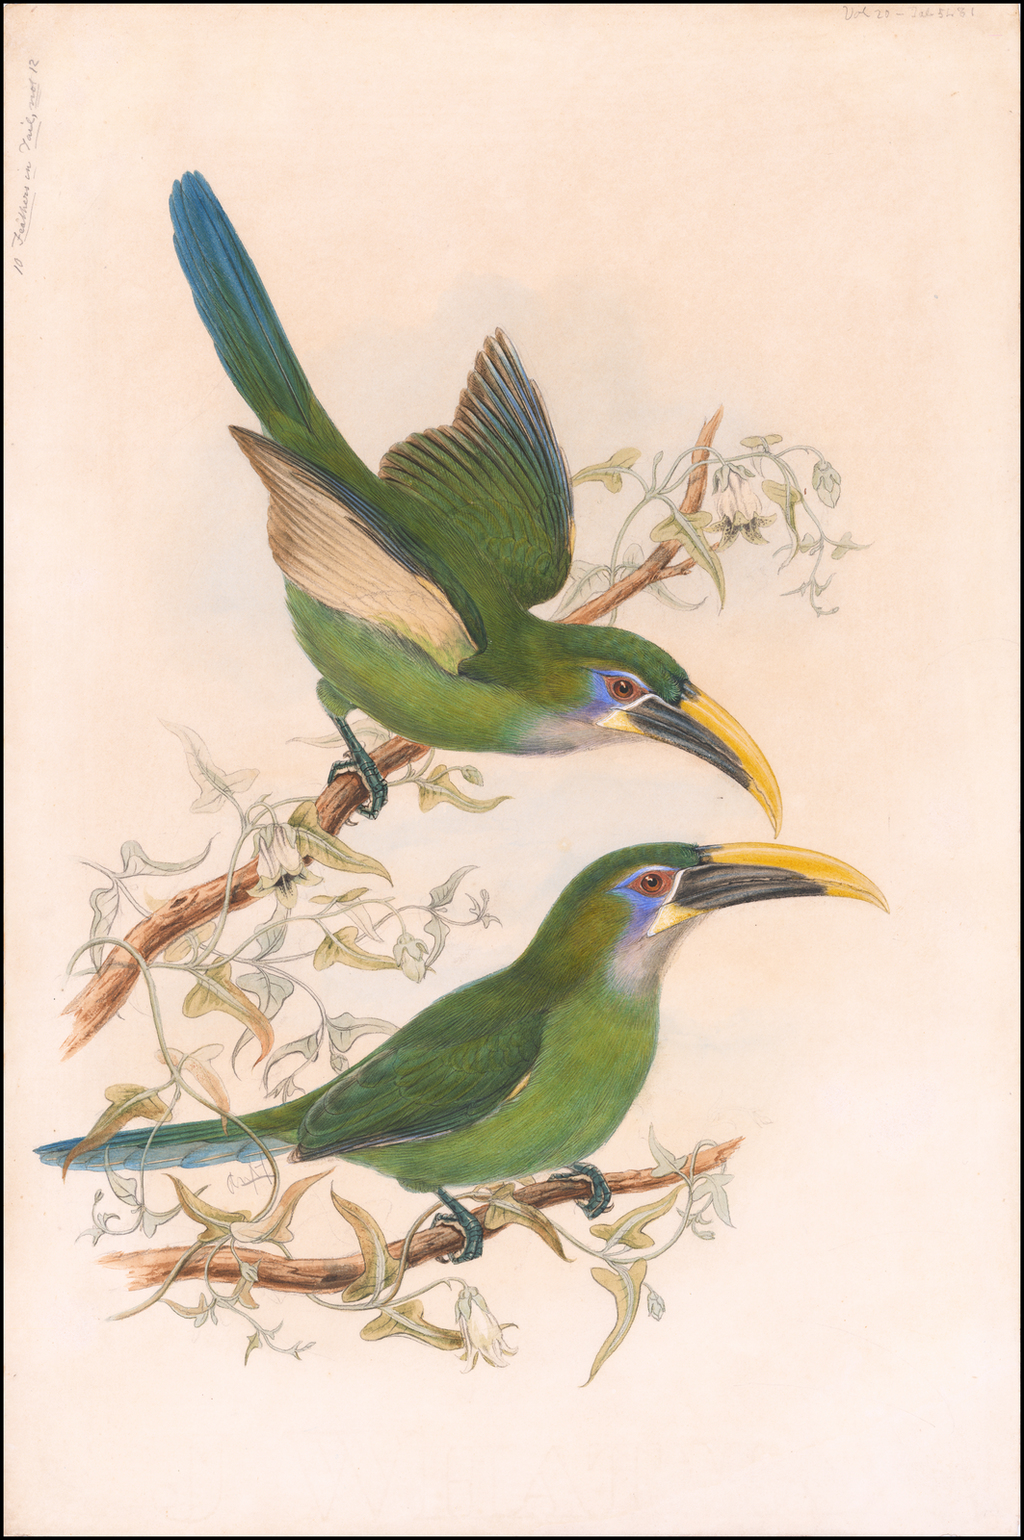 Yellow-billed toucanets (Aulacorhynchus sulcatus calorhynchus) By William Matthew Hart / John Gould